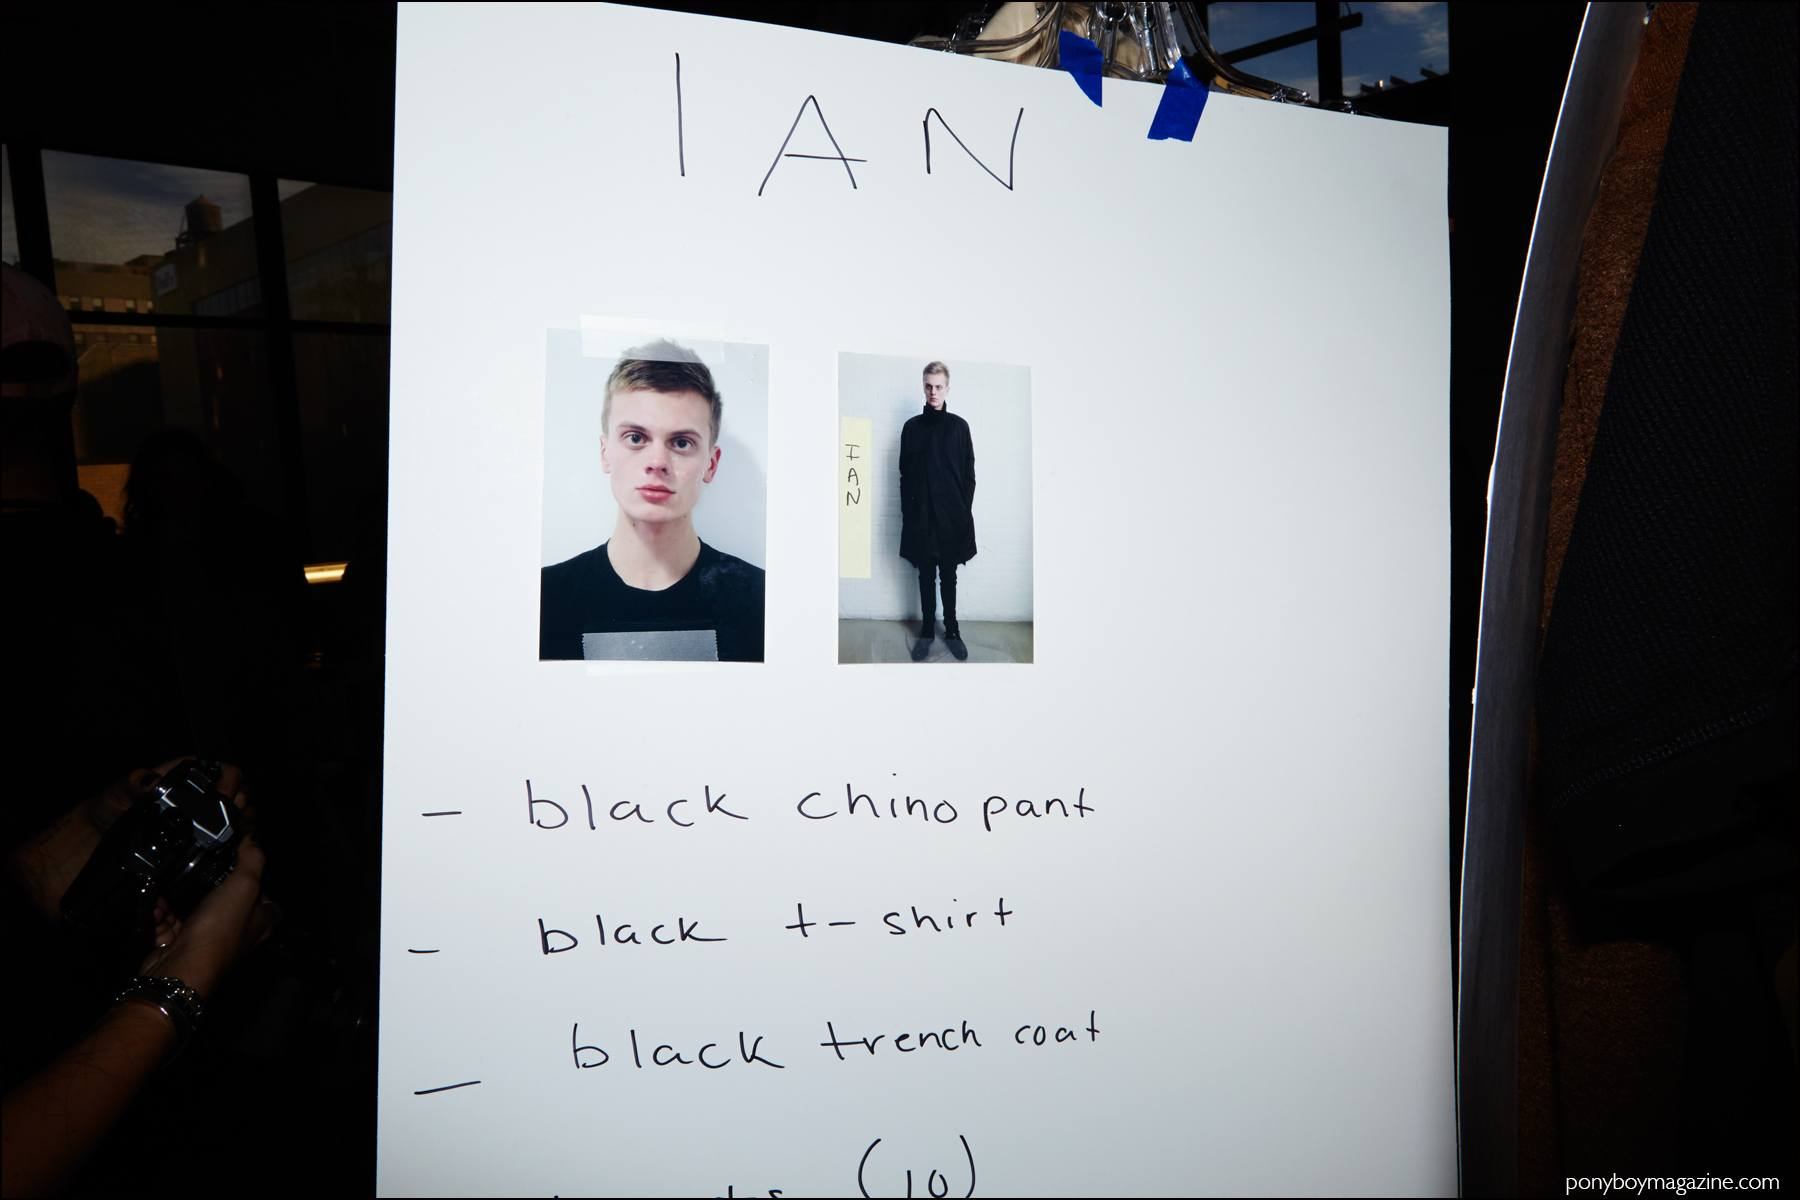 Dressing card for Fusion male model Ian Weglarz, backstage at Stampd menswear show. Photographed by Alexander Thompson for Ponyboy magazine NY.